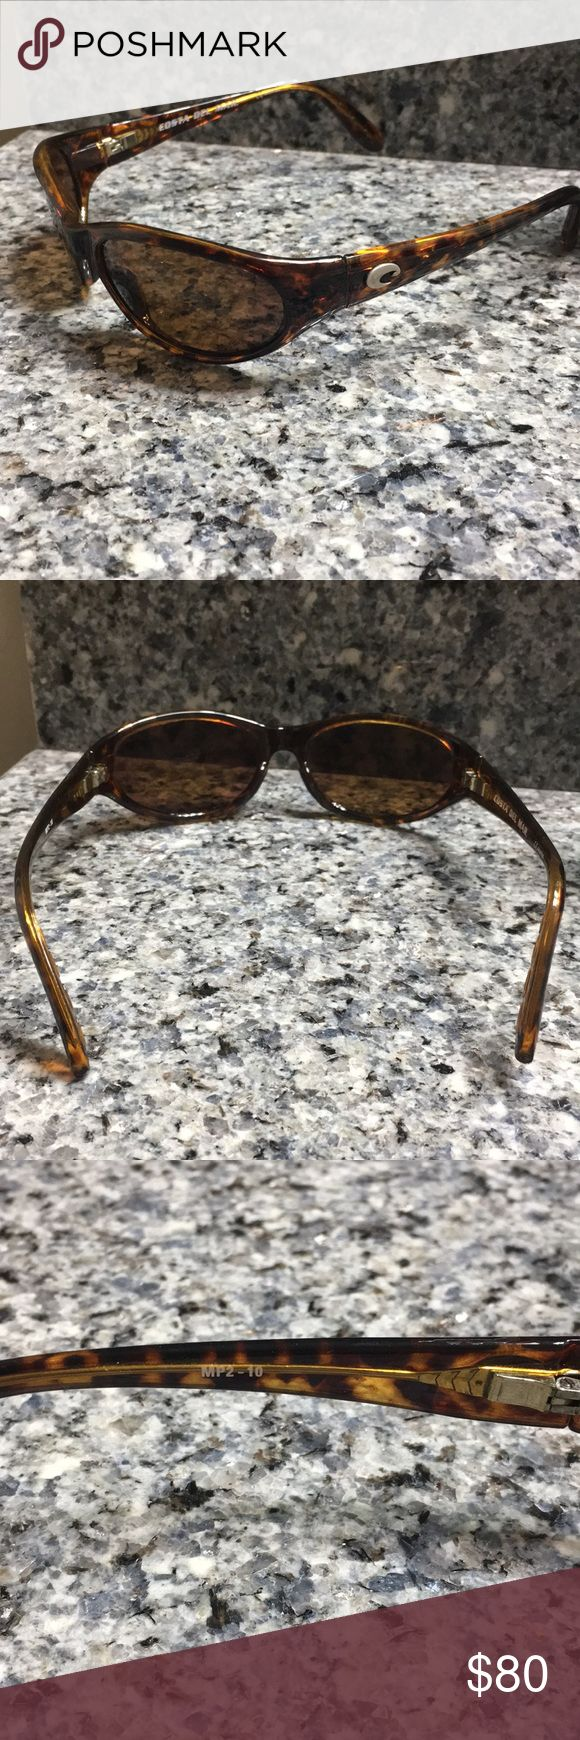 Costa Del Mar MP2-10 Tortoise Women's Sunglasses Gorgeous 100% Authentic Costa Del mar Sunglasses. Tortoise Shell Colored Frames and Amber Lenses. No Scratches,dings or dents. Case Included. $189 Retail Accessories Sunglasses